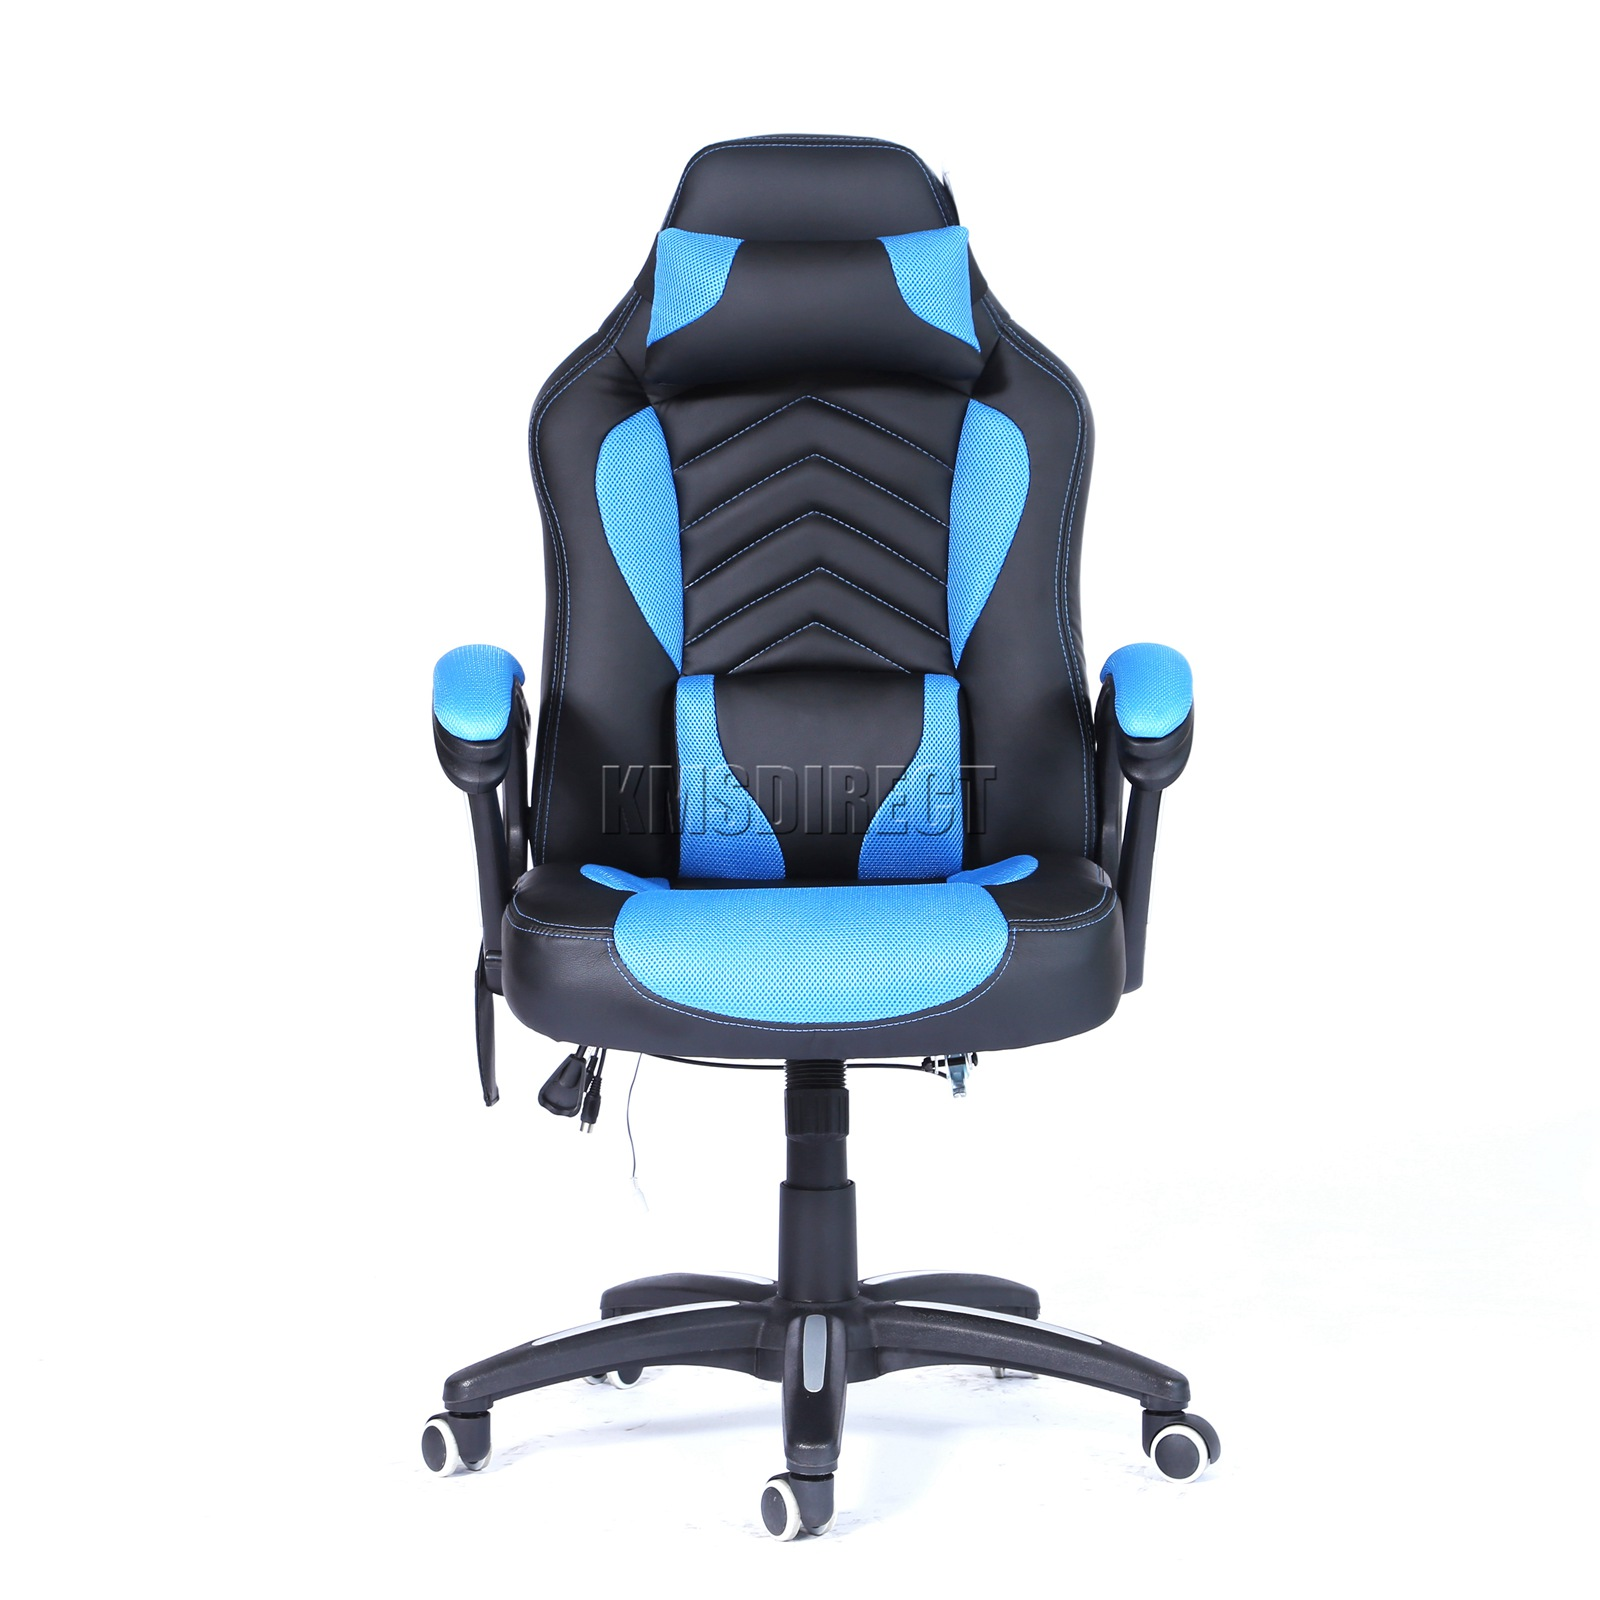 WestWood-Heated-Massage-Office-Chair-Gaming-amp-Computer-Recliner-Swivel-MC09 thumbnail 14